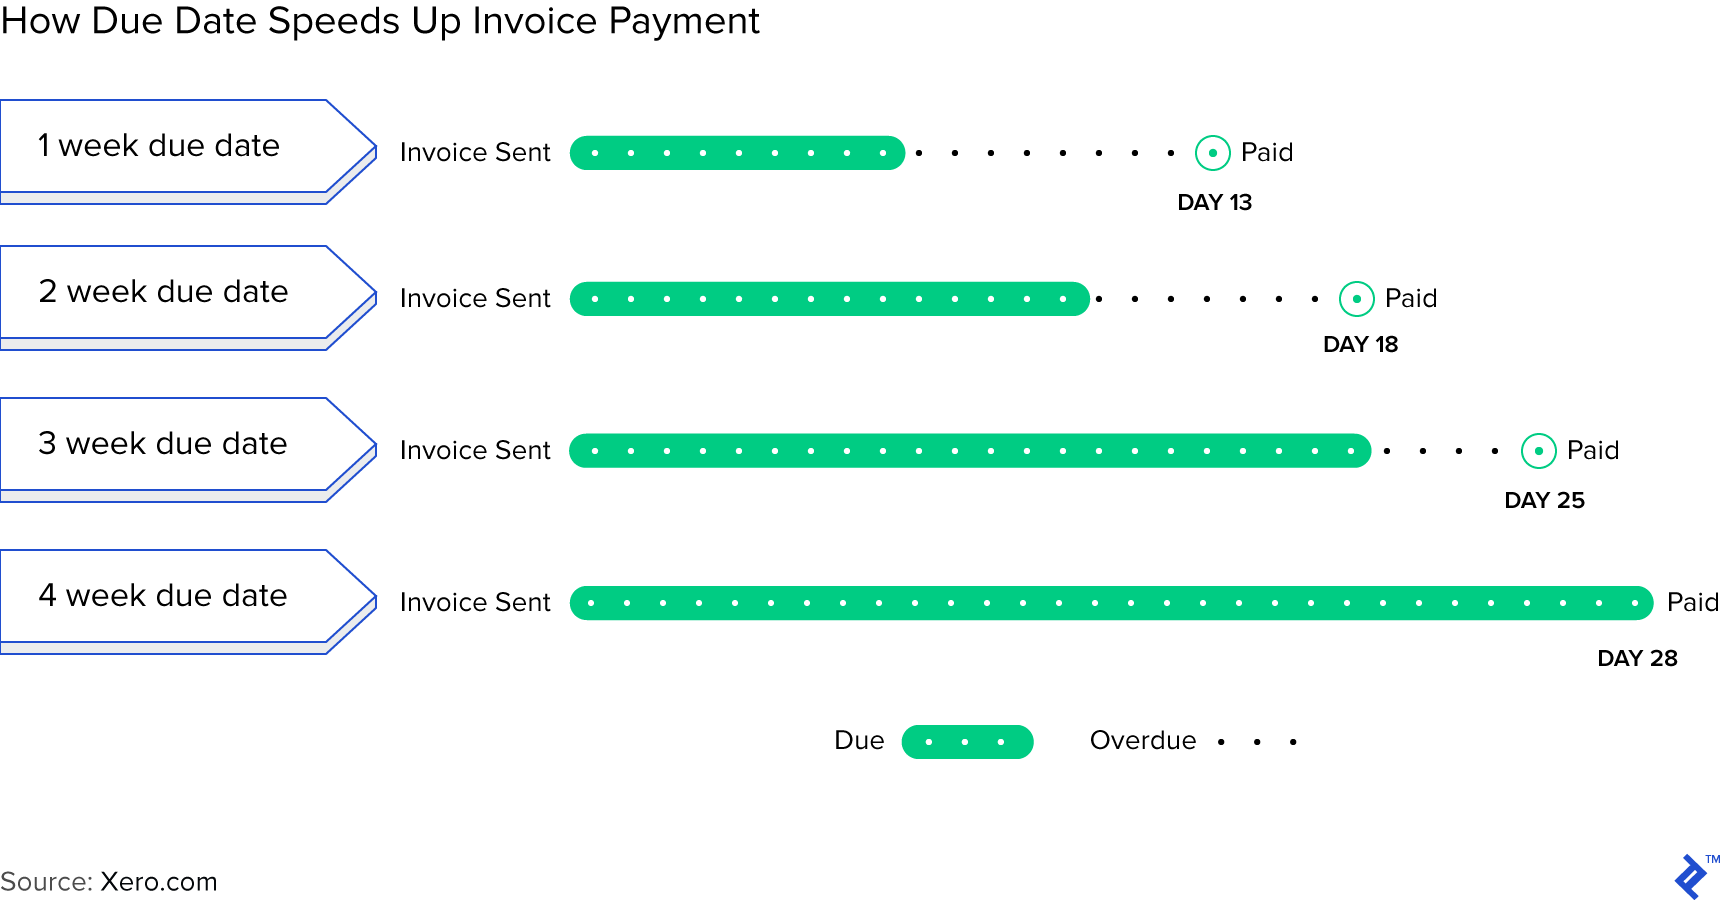 Graph showing how due dates speed up invoice payment.